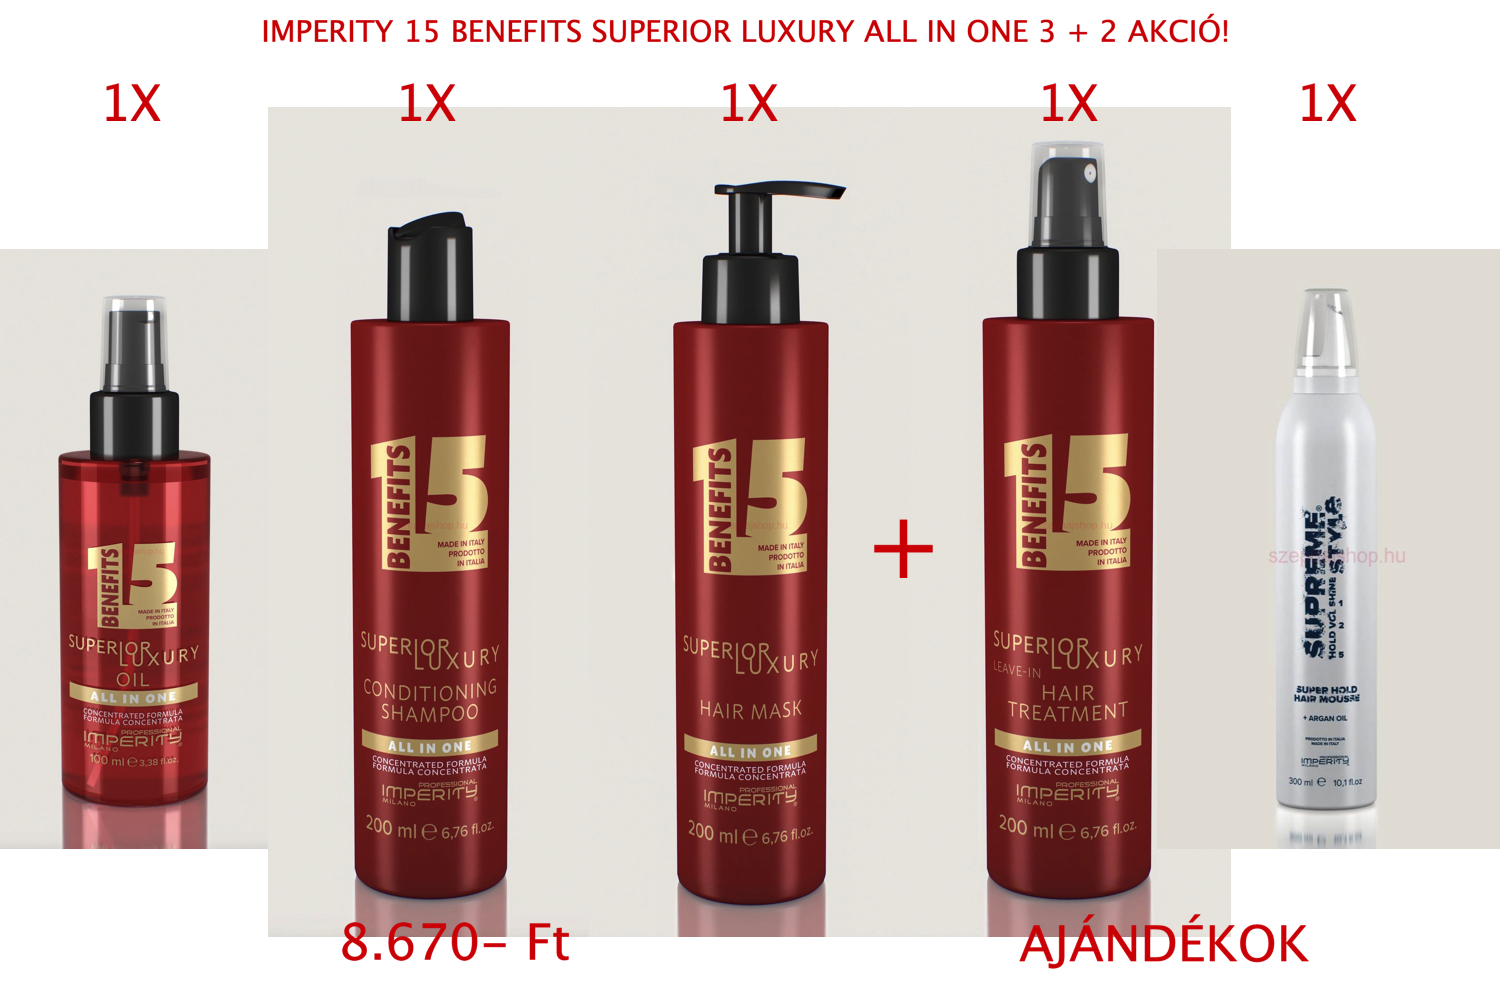 IMPERITY 15 BENEFITS SUPERIOR LUXURY ALL IN ONE 3 + 2 AKCIÓ